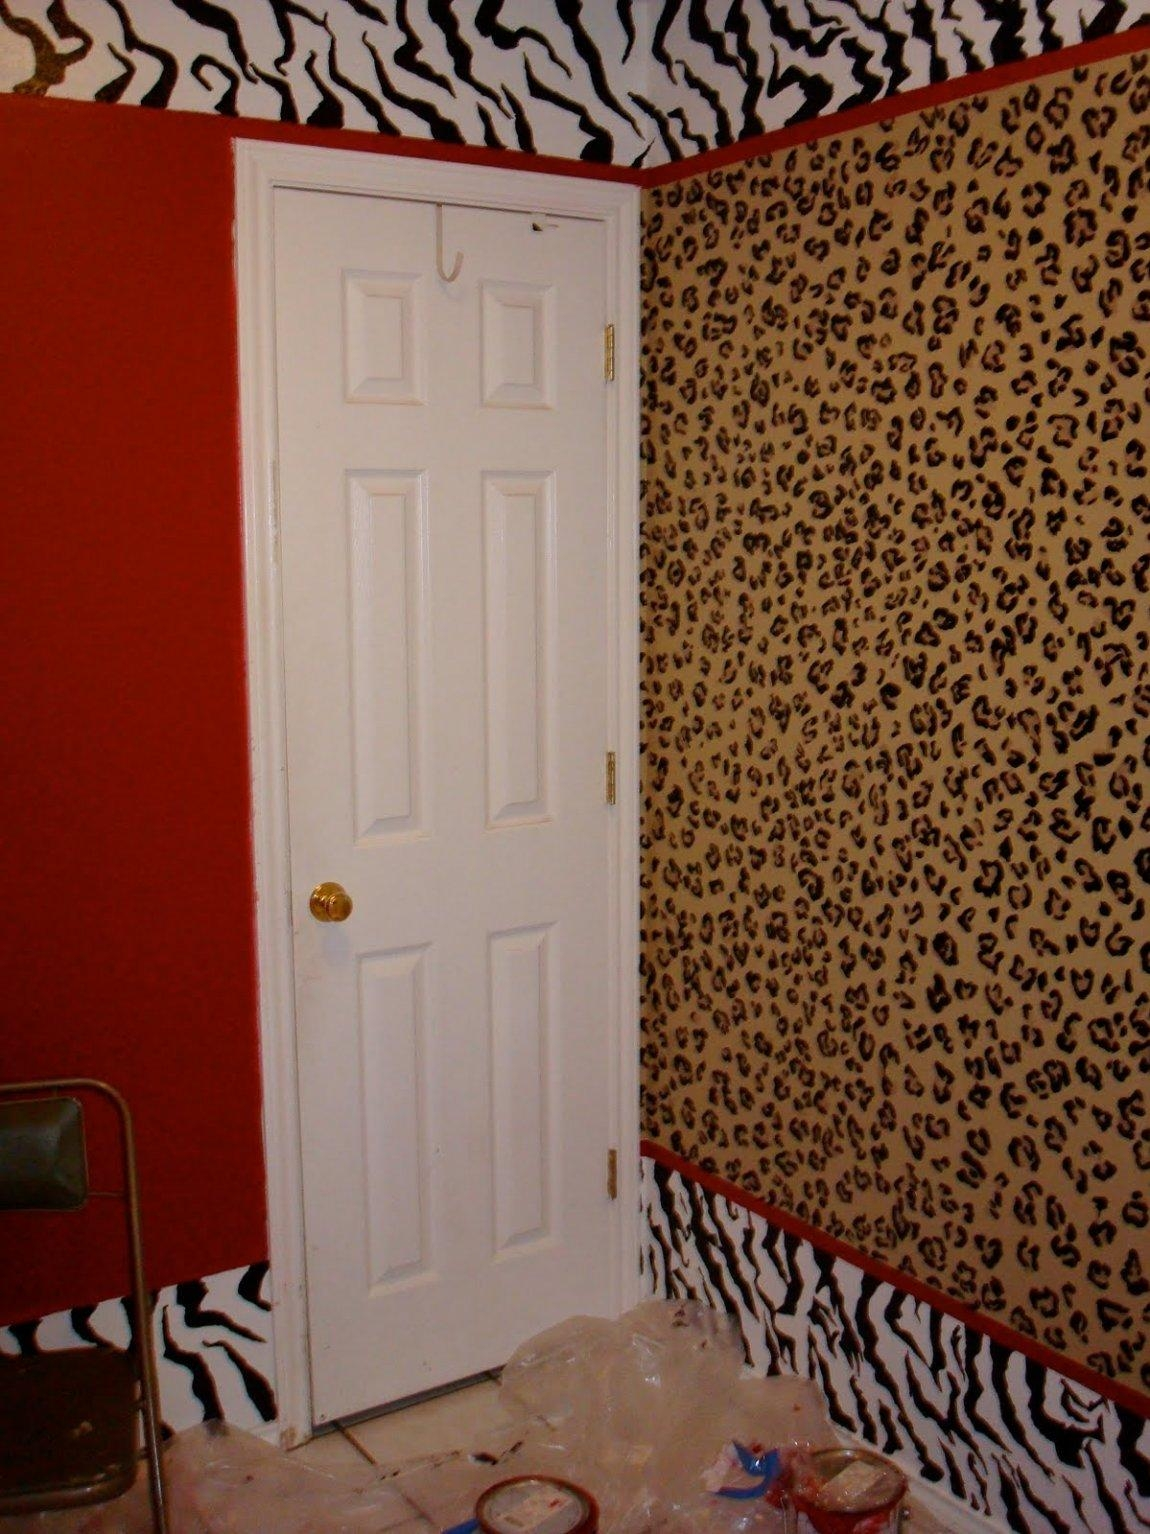 2018 Latest Leopard Print Wall Art Wall Art Ideas